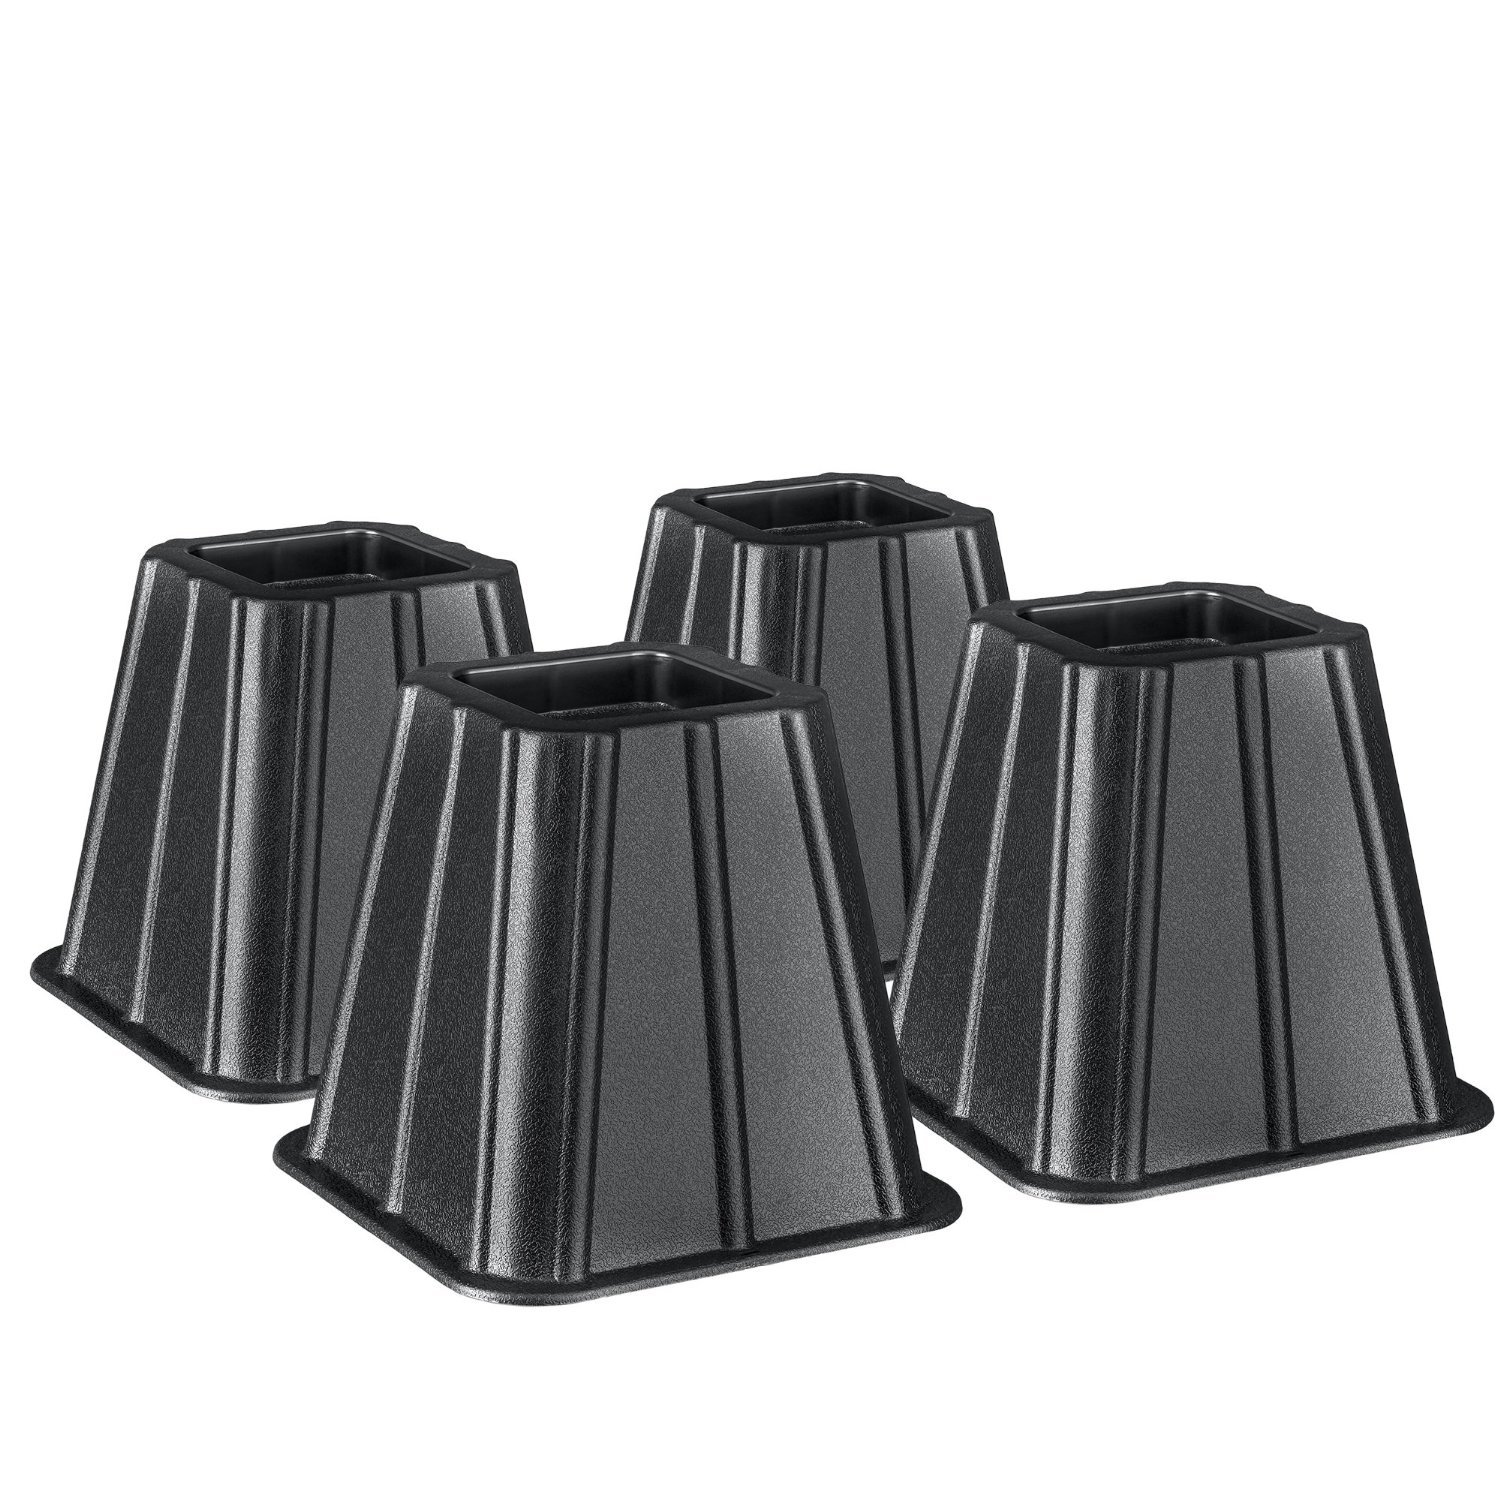 Greenco Super Strong Bed and Furniture Riser, Great for Under Bed Storage - Pack of 4